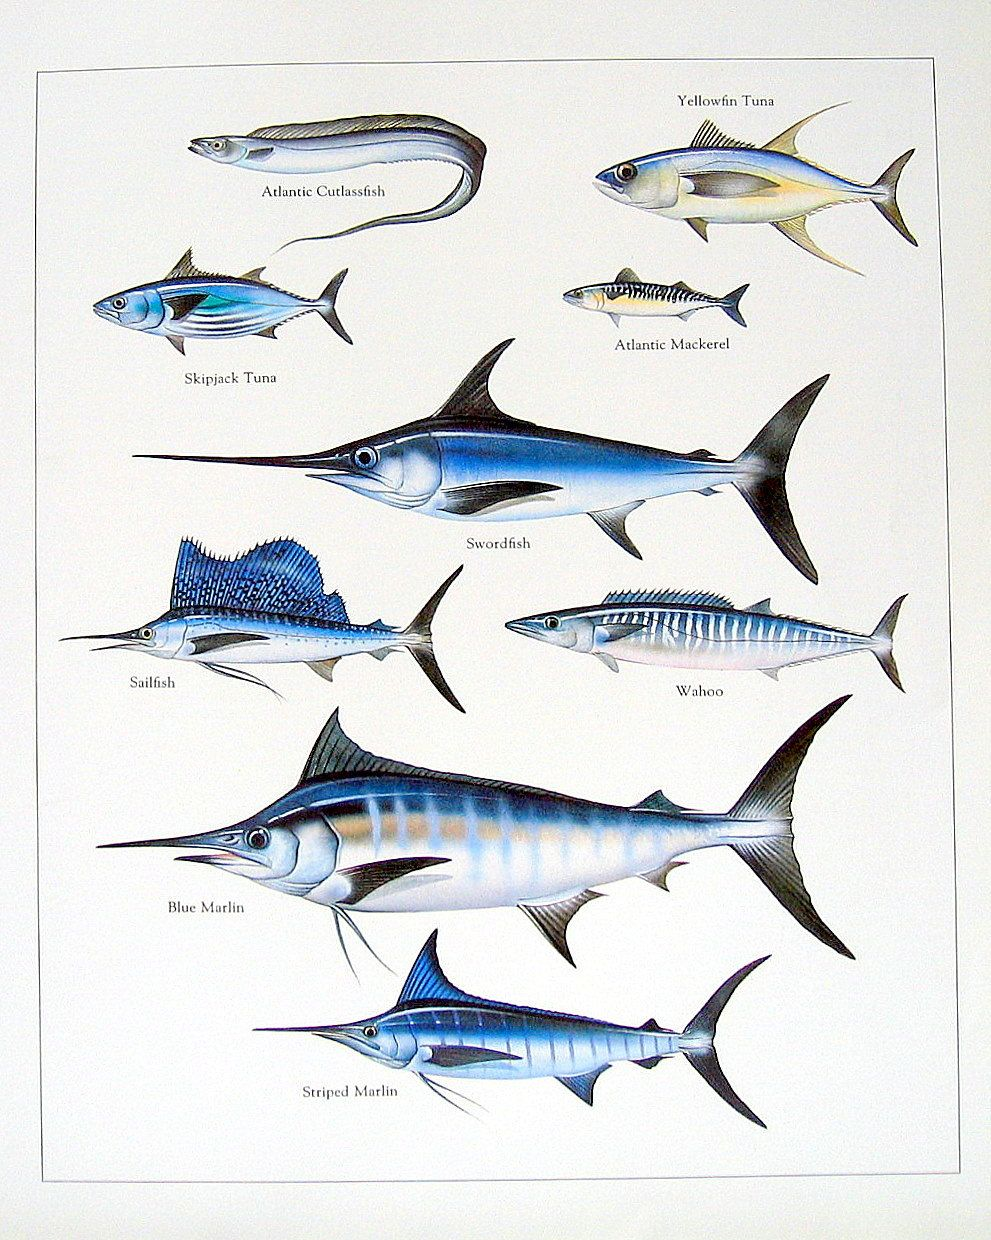 Atlantic Cutlassfish, Yellowfin Tuna, Swordfish Vintage 1984 Fish ...